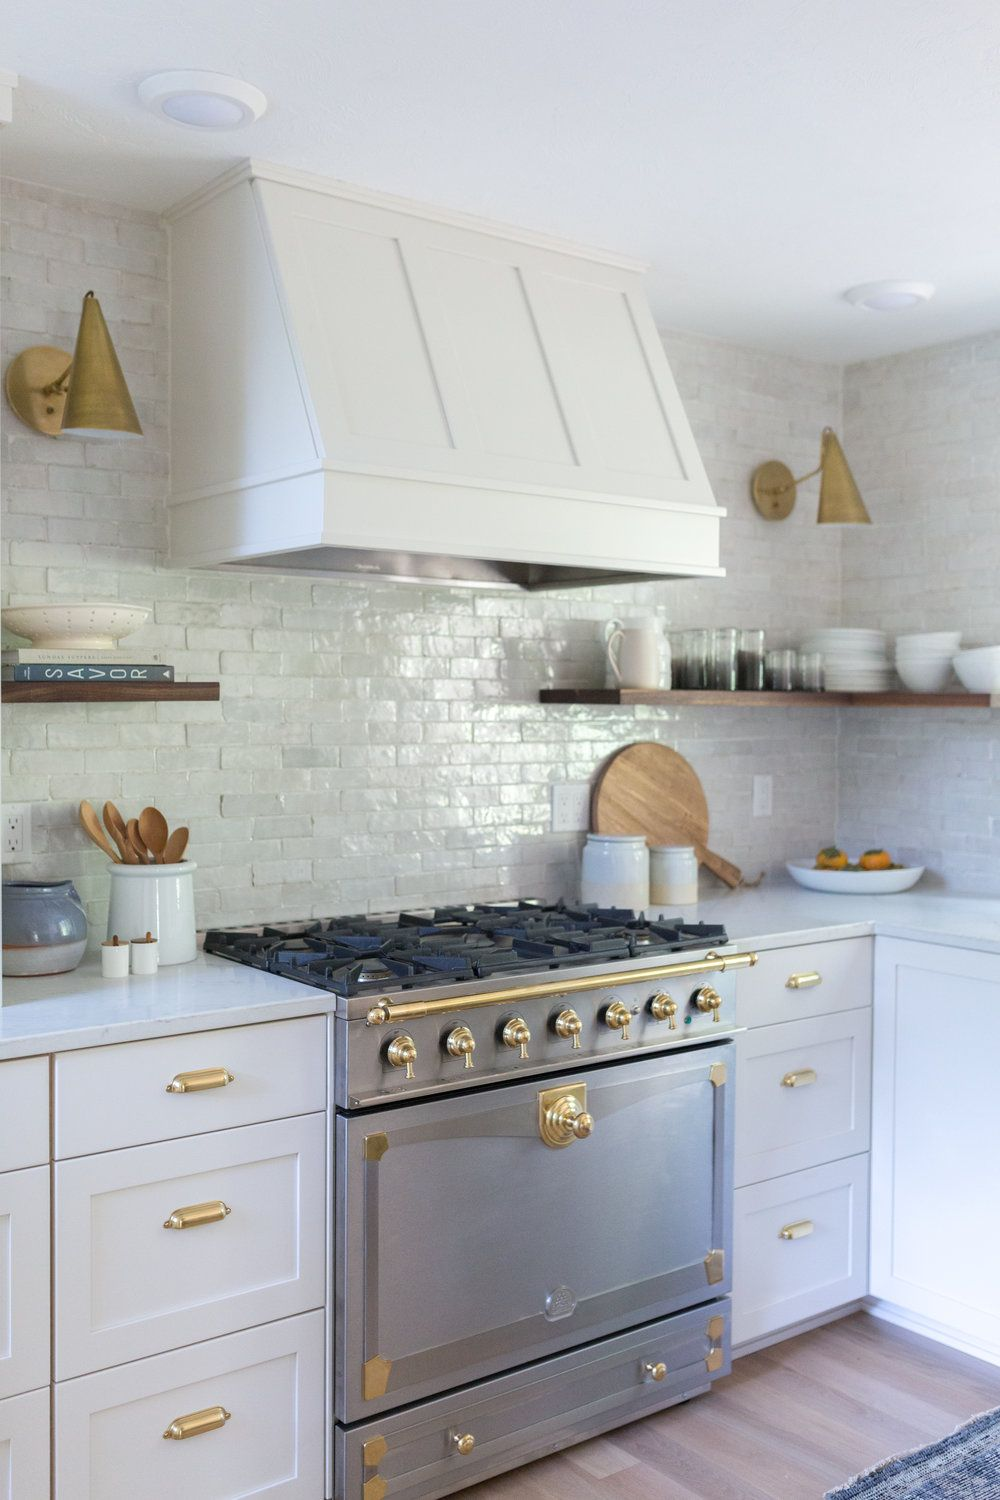 Before And After Kei And Jen S Amazing Galley Kitchen Transformation Bay On A Budget Kitchen Backsplash Designs Herringbone Tiles Kitchen Open Concept Kitchen